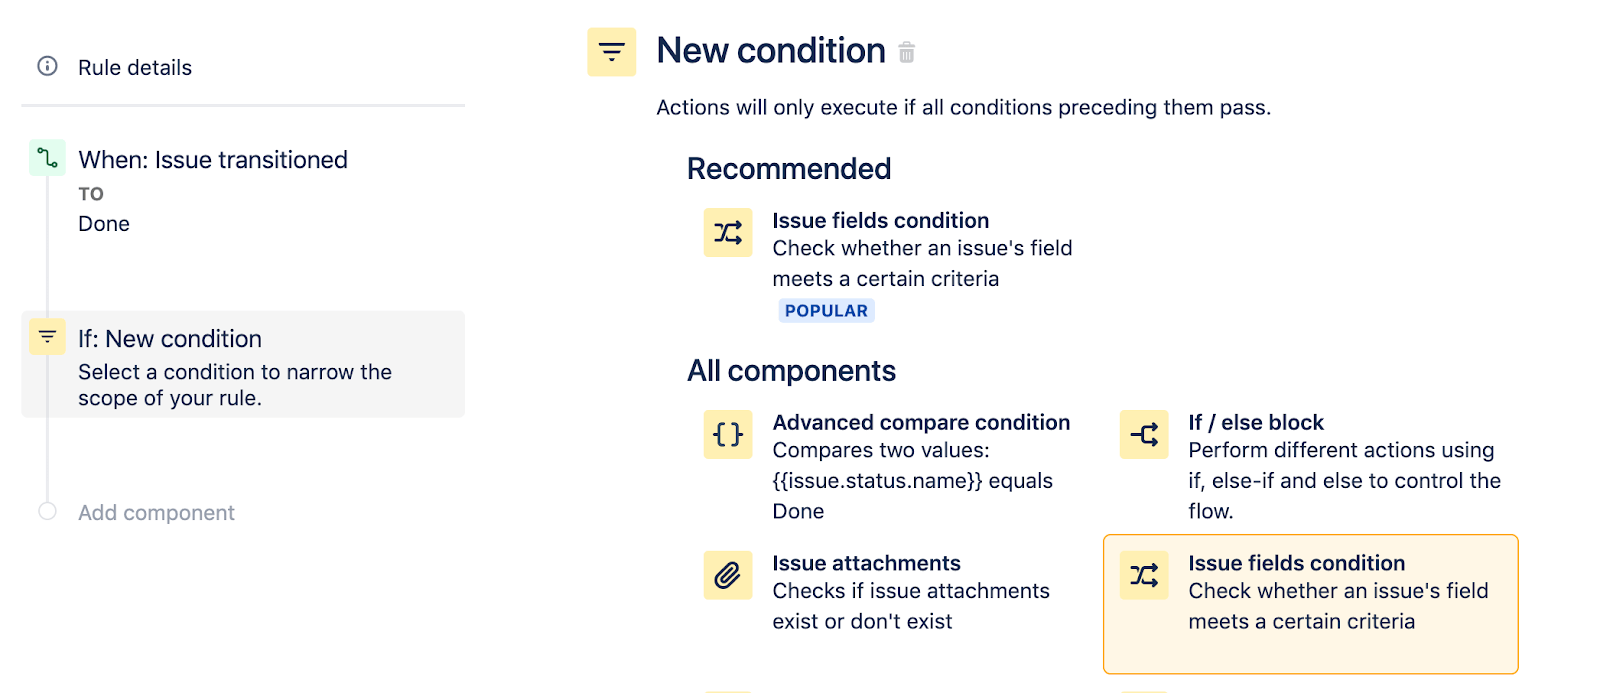 Select Issue fields condition